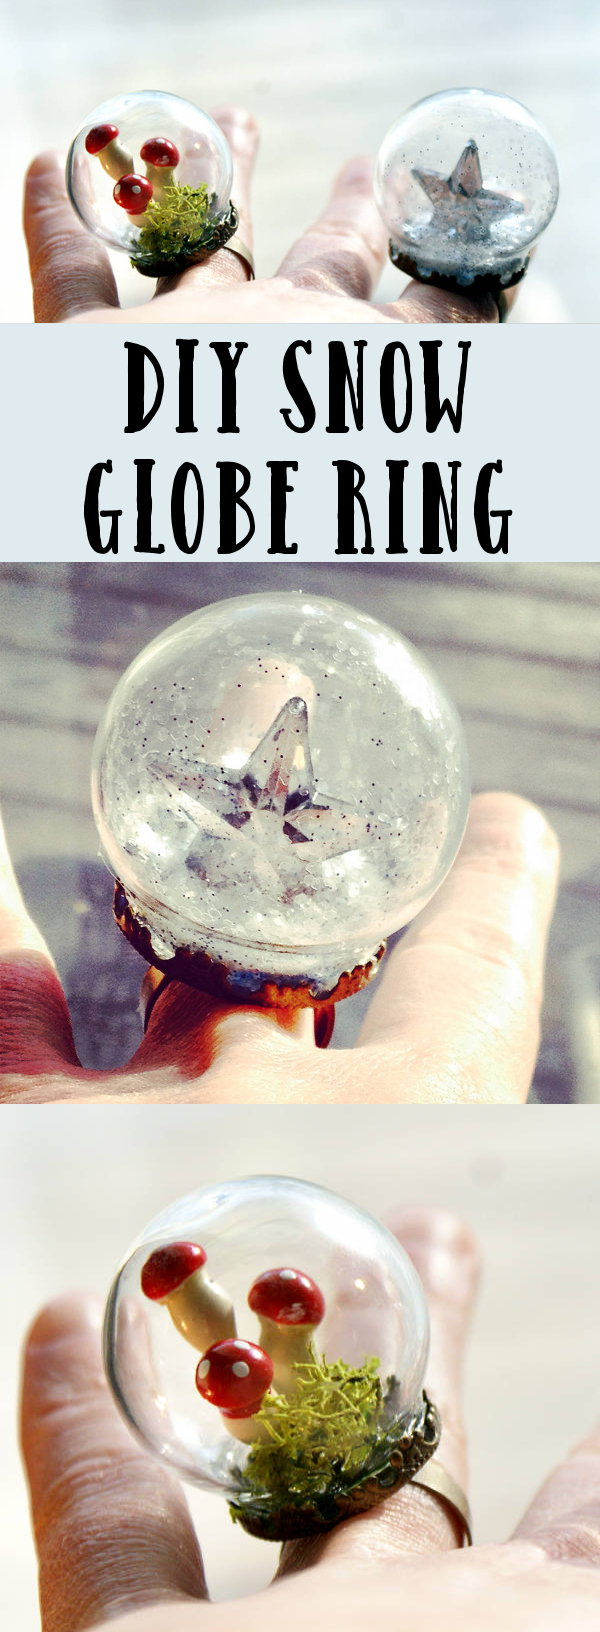 DIY Snow Globe Ring Gift Idea! This starry DIY snow globe ring makes a fun and unique homemade Christmas gift!